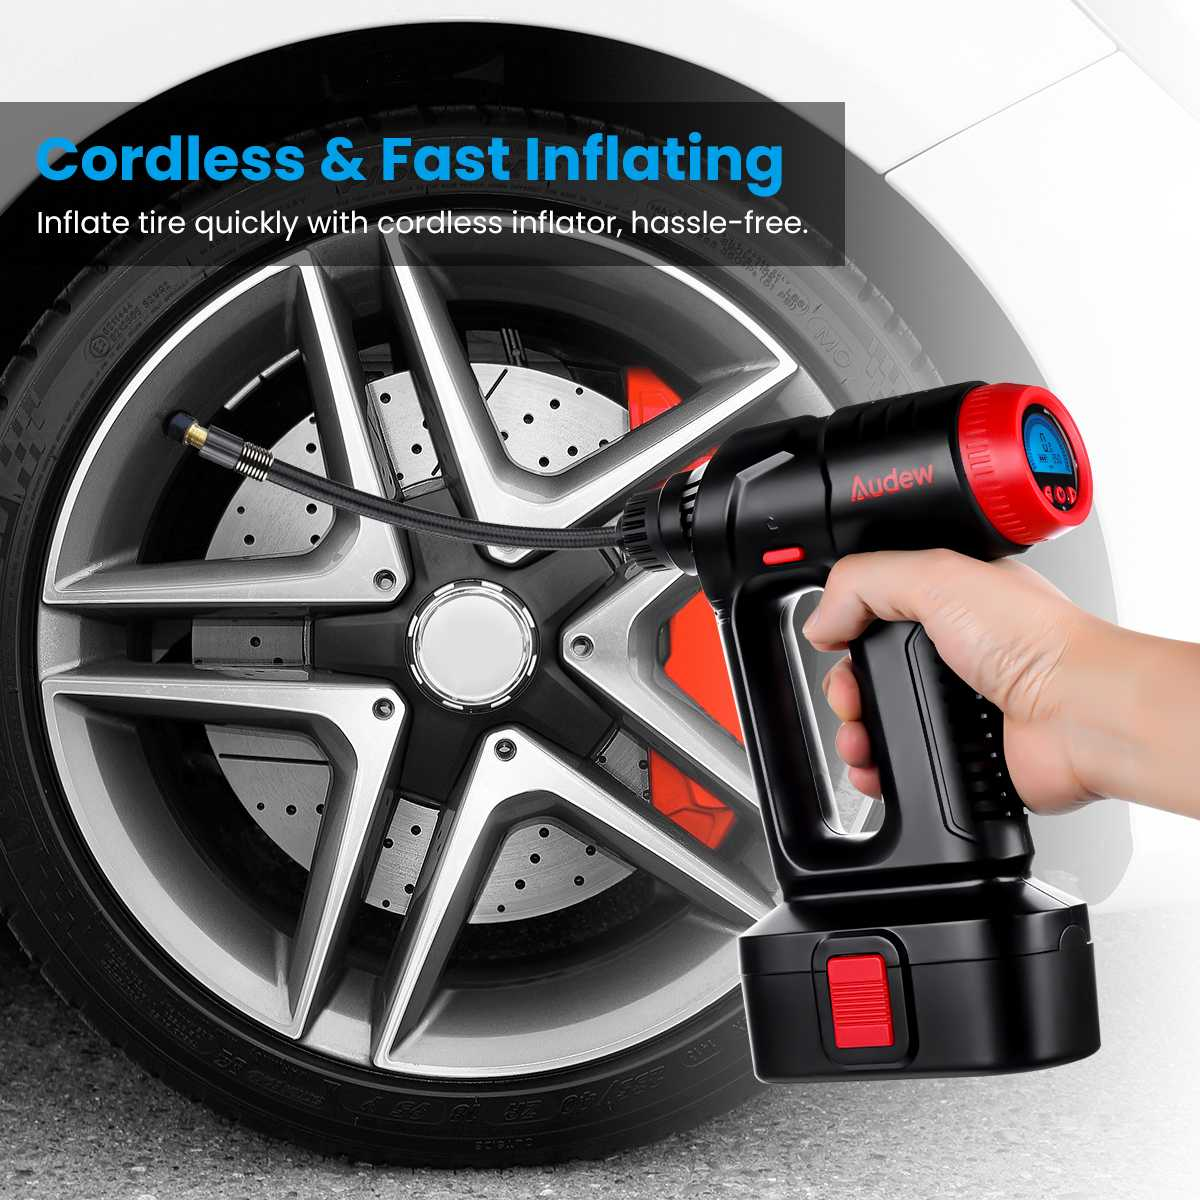 NEW 12V 130PSI Cordless Handheld Air Inflatable Pump Car Tyre Inflator LCD Digital with Rechargeable Battery For Auto EmergencyNEW 12V 130PSI Cordless Handheld Air Inflatable Pump Car Tyre Inflator LCD Digital with Rechargeable Battery For Auto Emergency